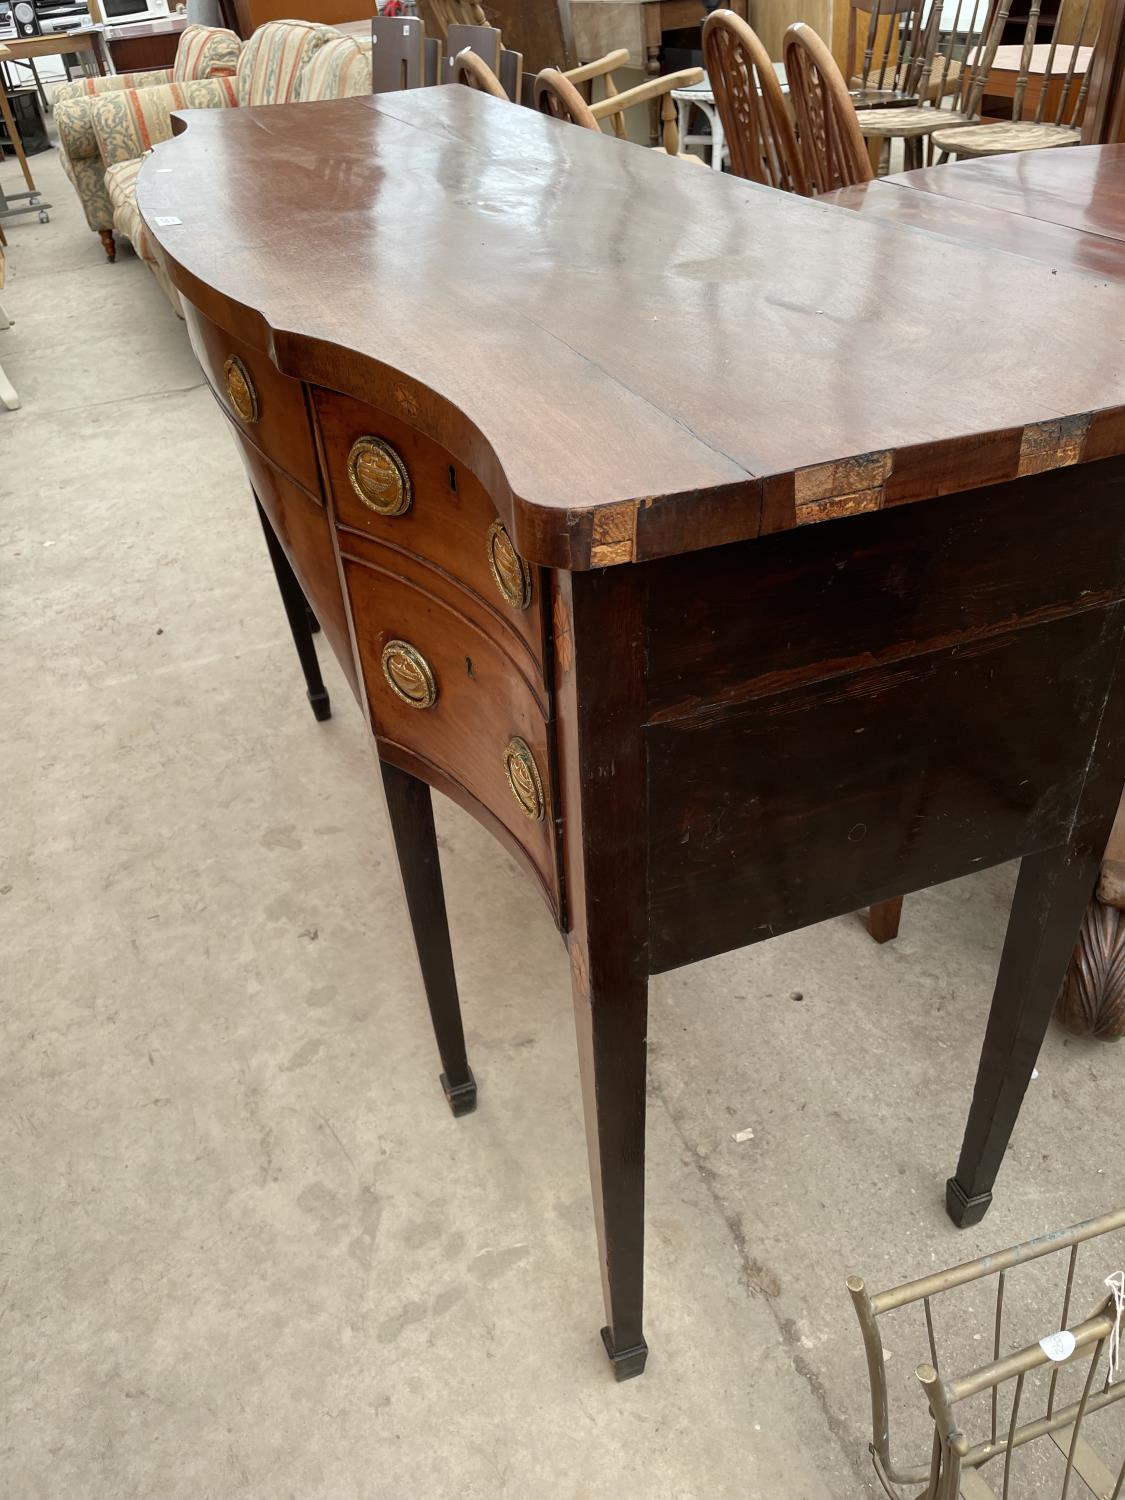 A 19TH CENTURY MAHOGANY AND INLAID SIDEBOARD ENCLOSING FOUR DRAWERS, ON TAPERED LEGS, WITH SPADE - Image 7 of 7